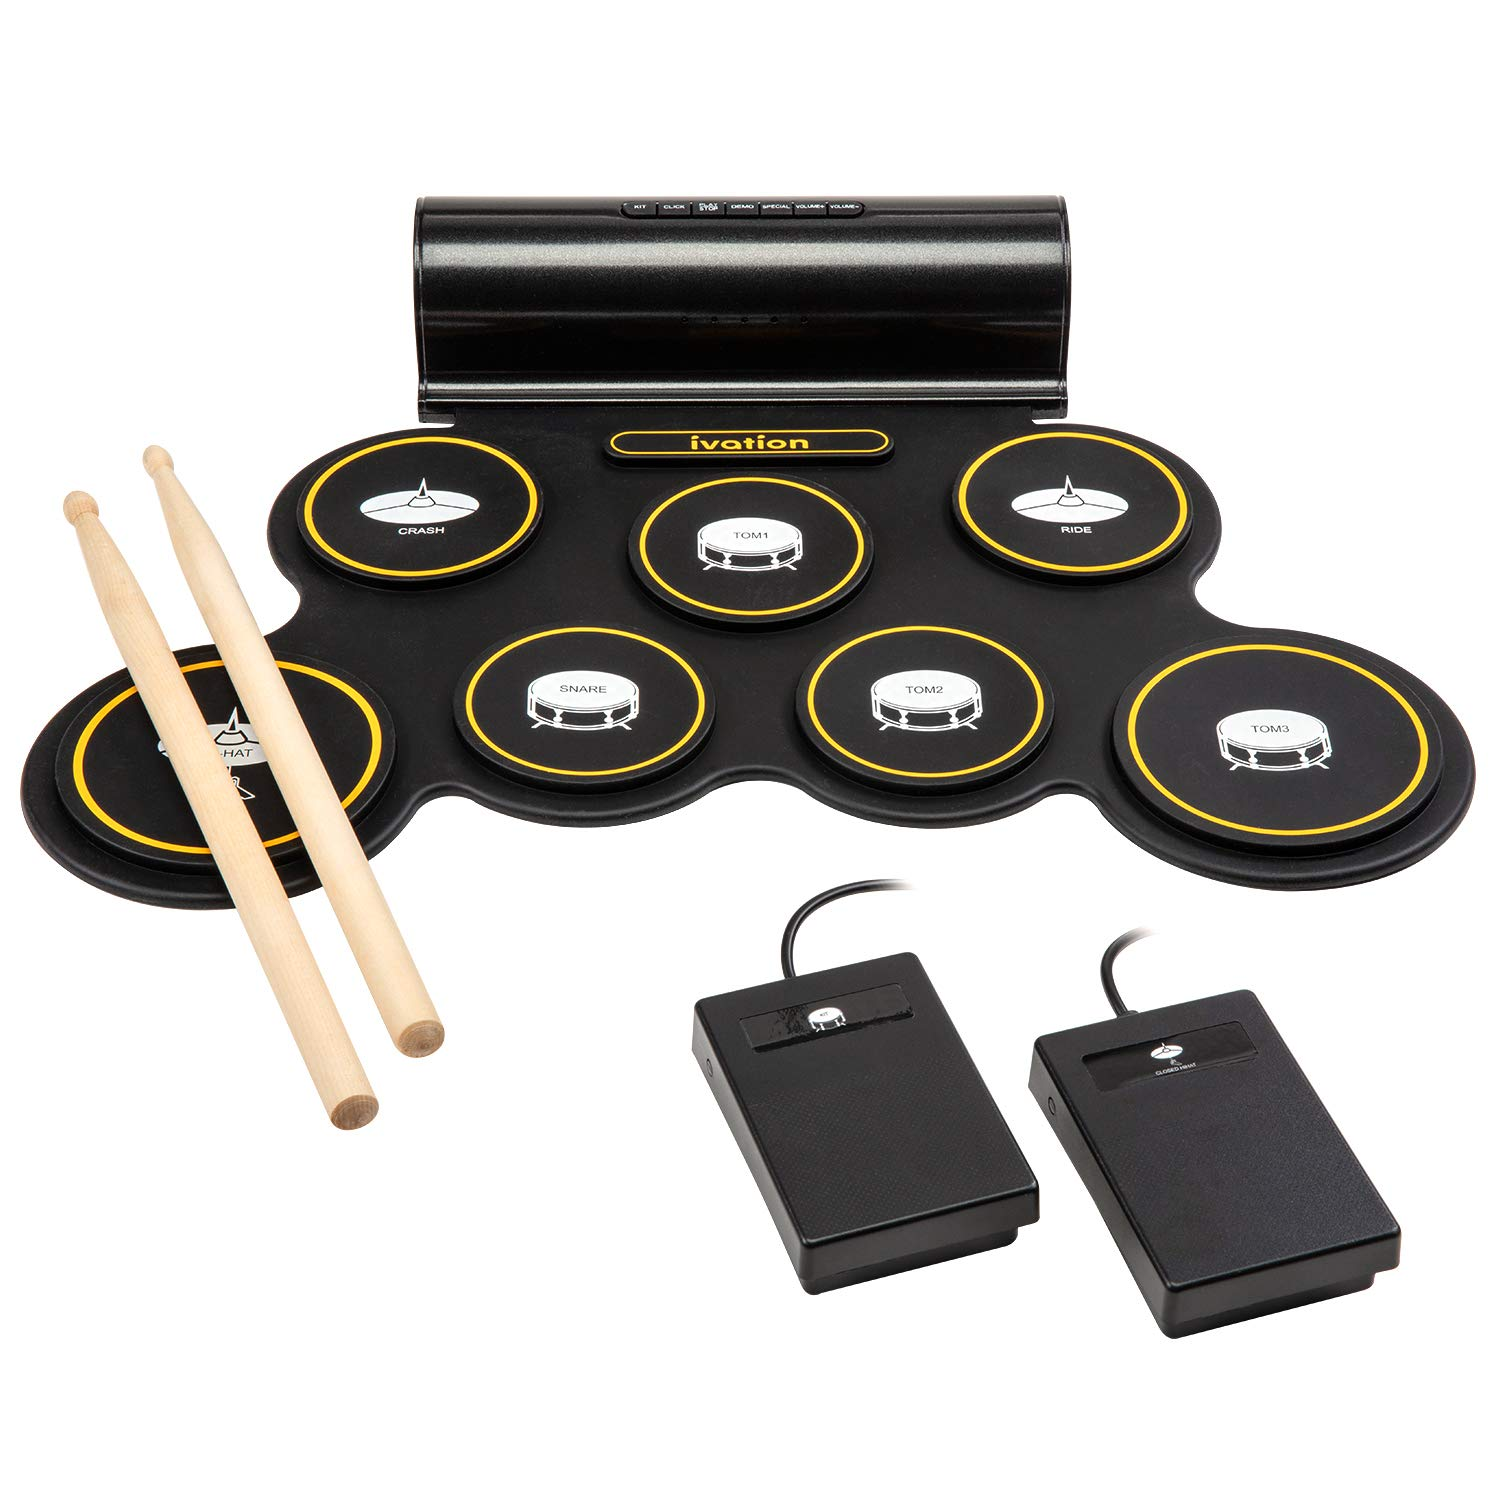 Ivation Portable Electronic Drum Pad - Digital Roll-Up Touch Sensitive Drum Practice Kit - 7 Labeled Pads 2 Foot Pedals Kids Children Beginners (With Speaker and Built in Rechargeable Battery) by Ivation